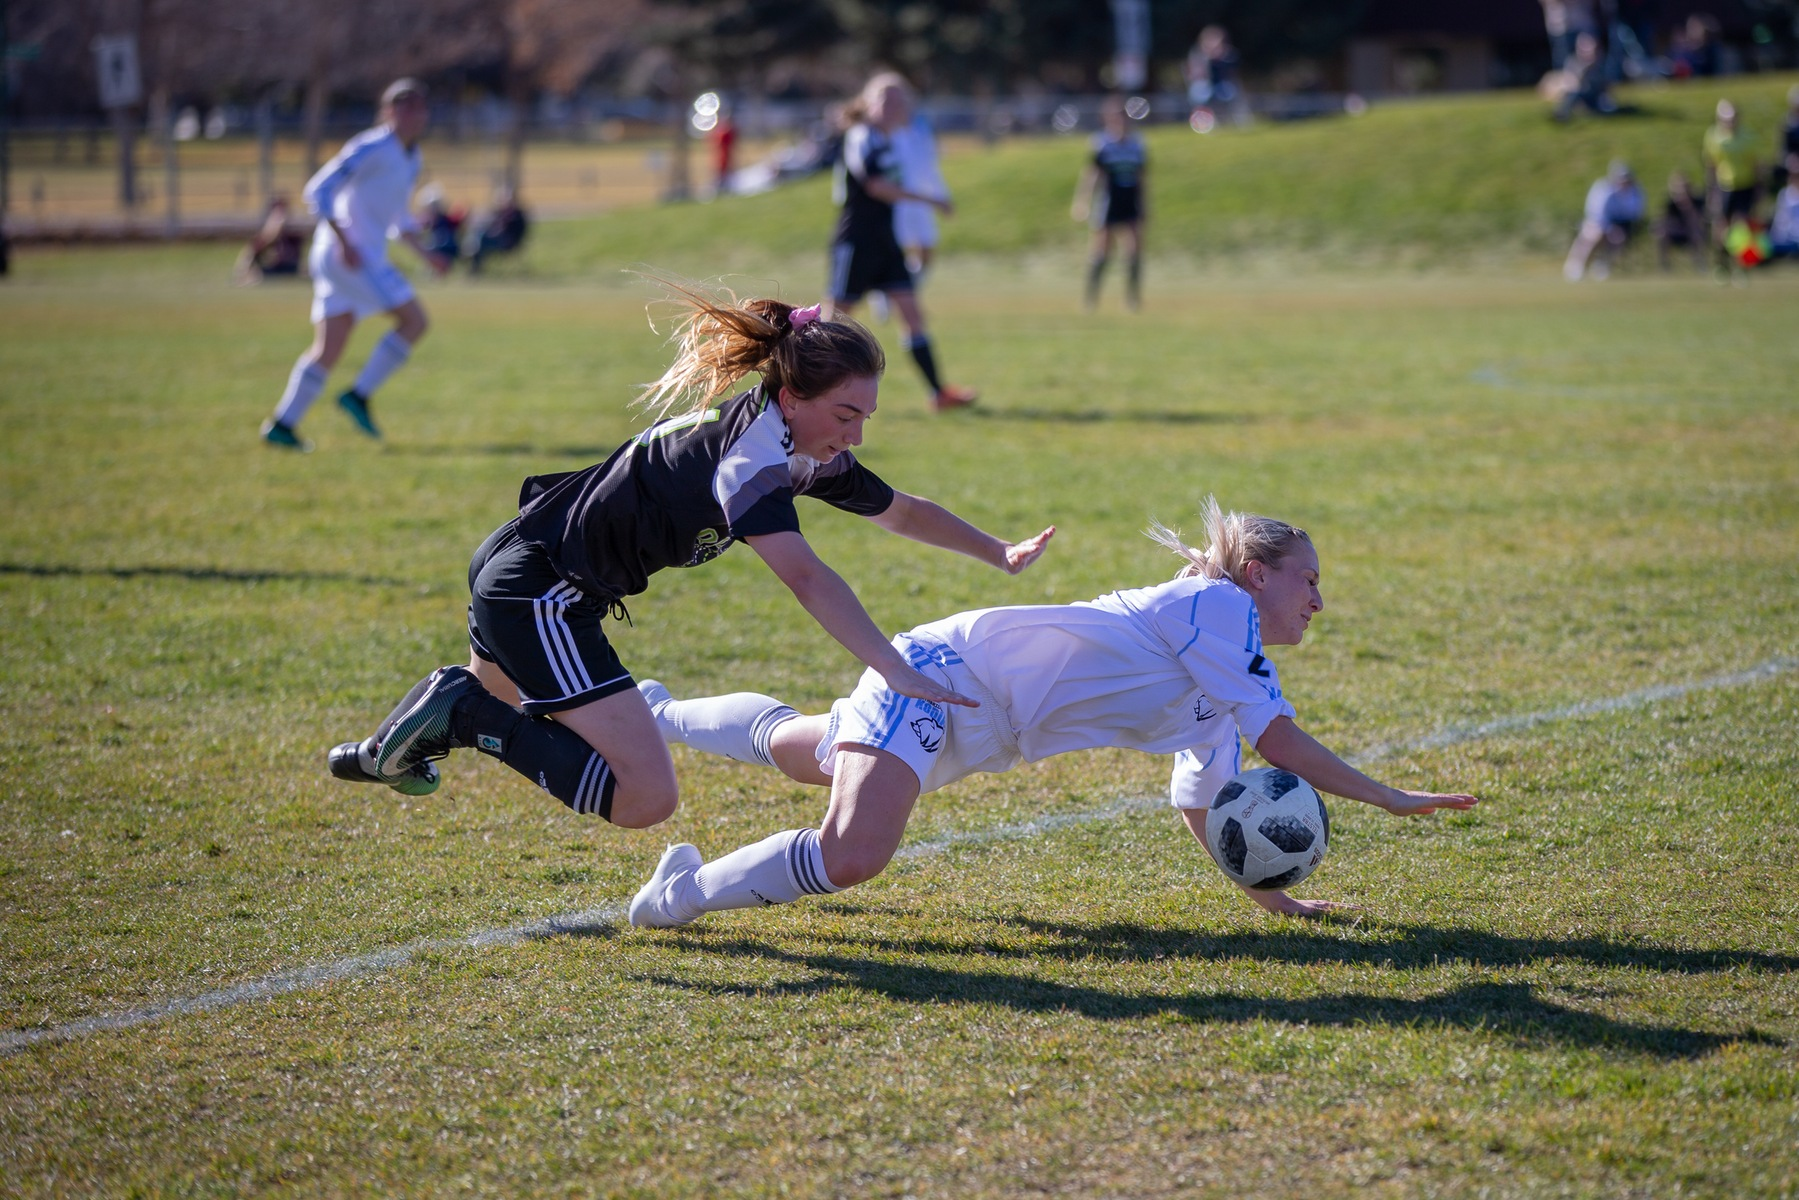 WSOC | Kodiaks and Queen battle to a tie